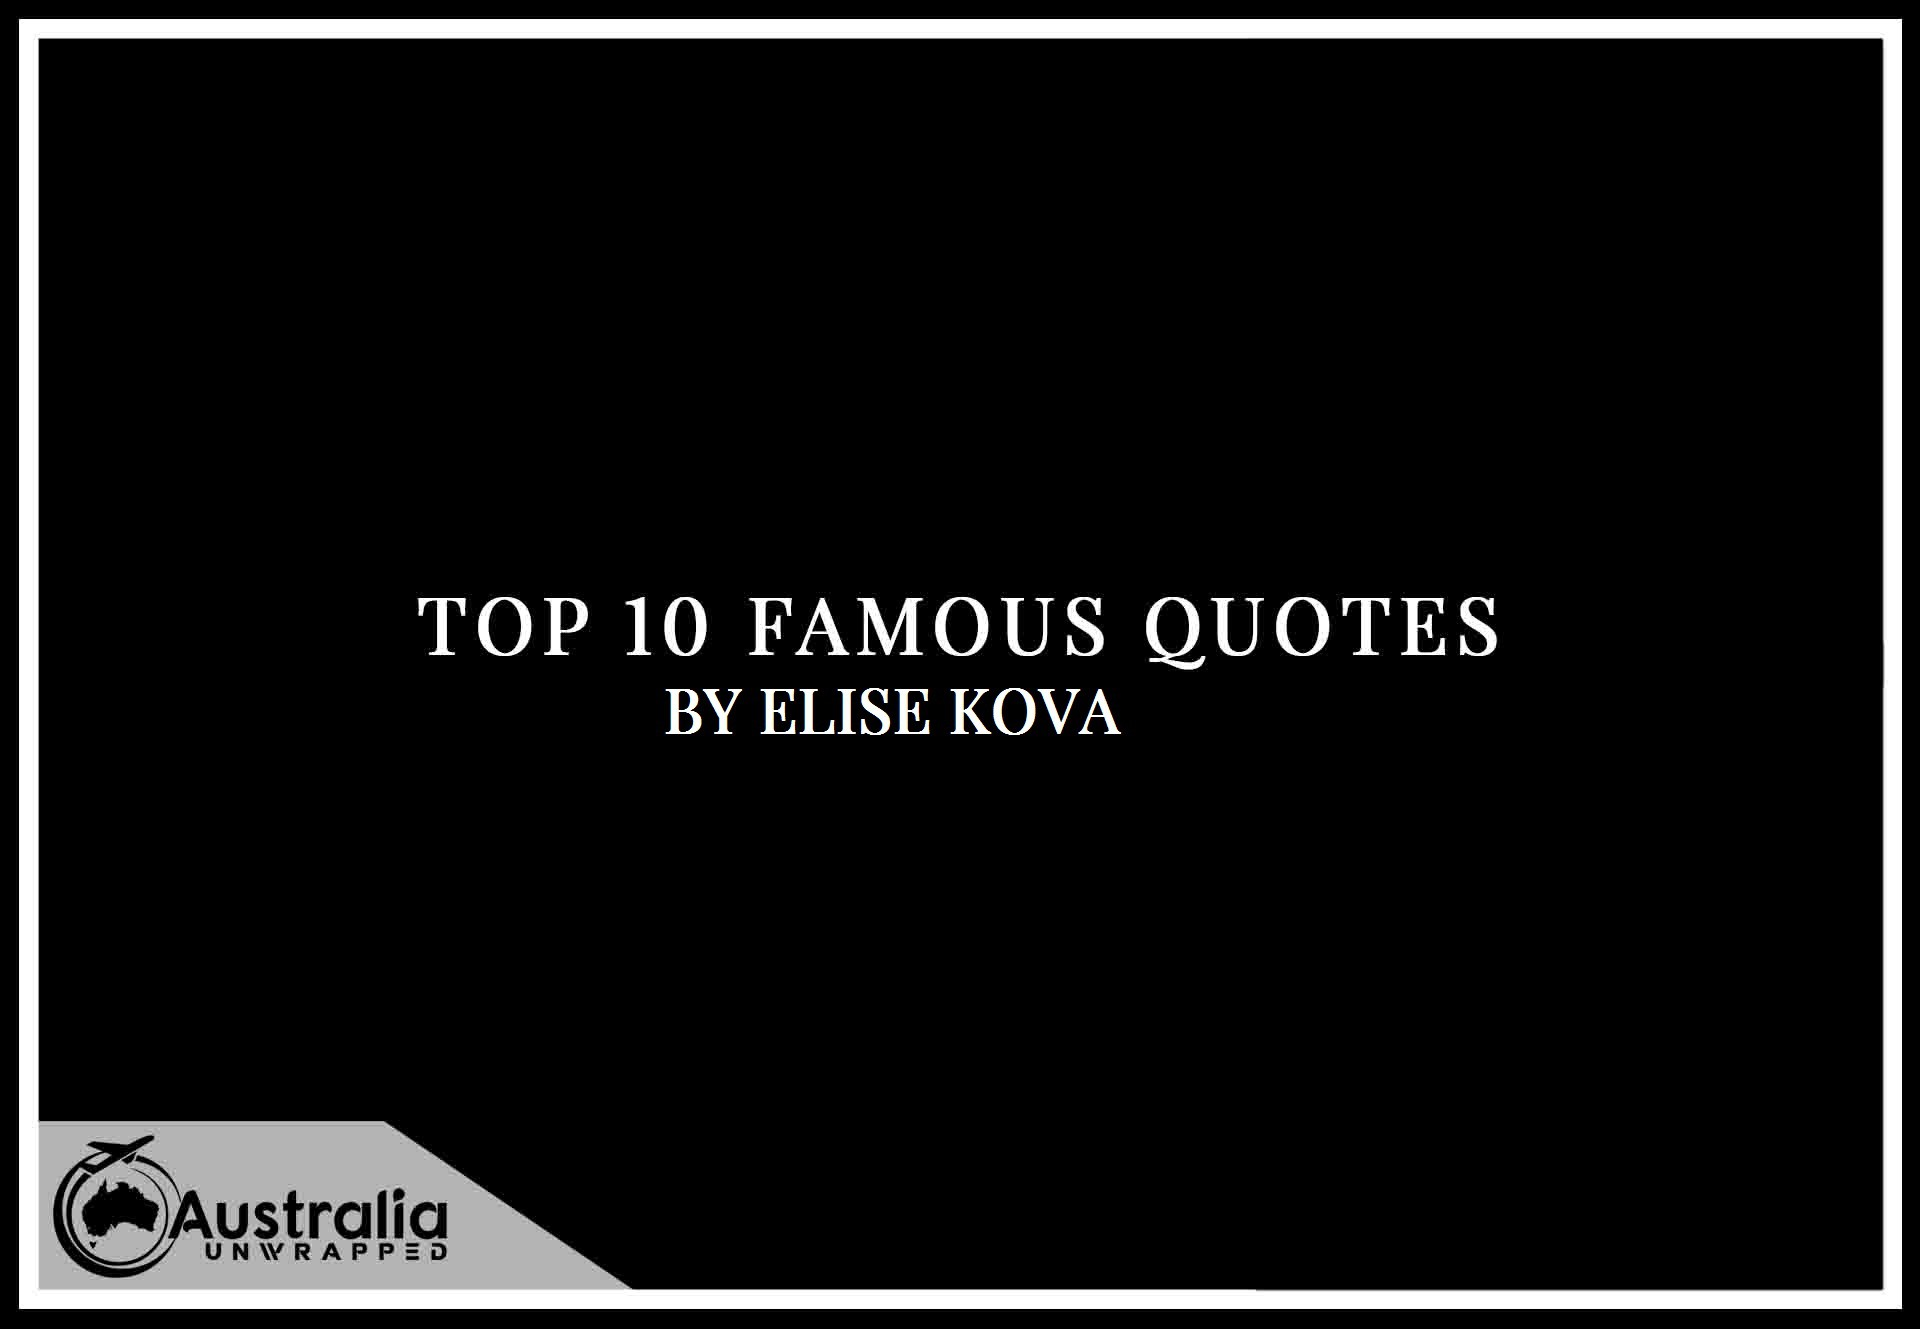 Elise Kova's Top 10 Popular and Famous Quotes